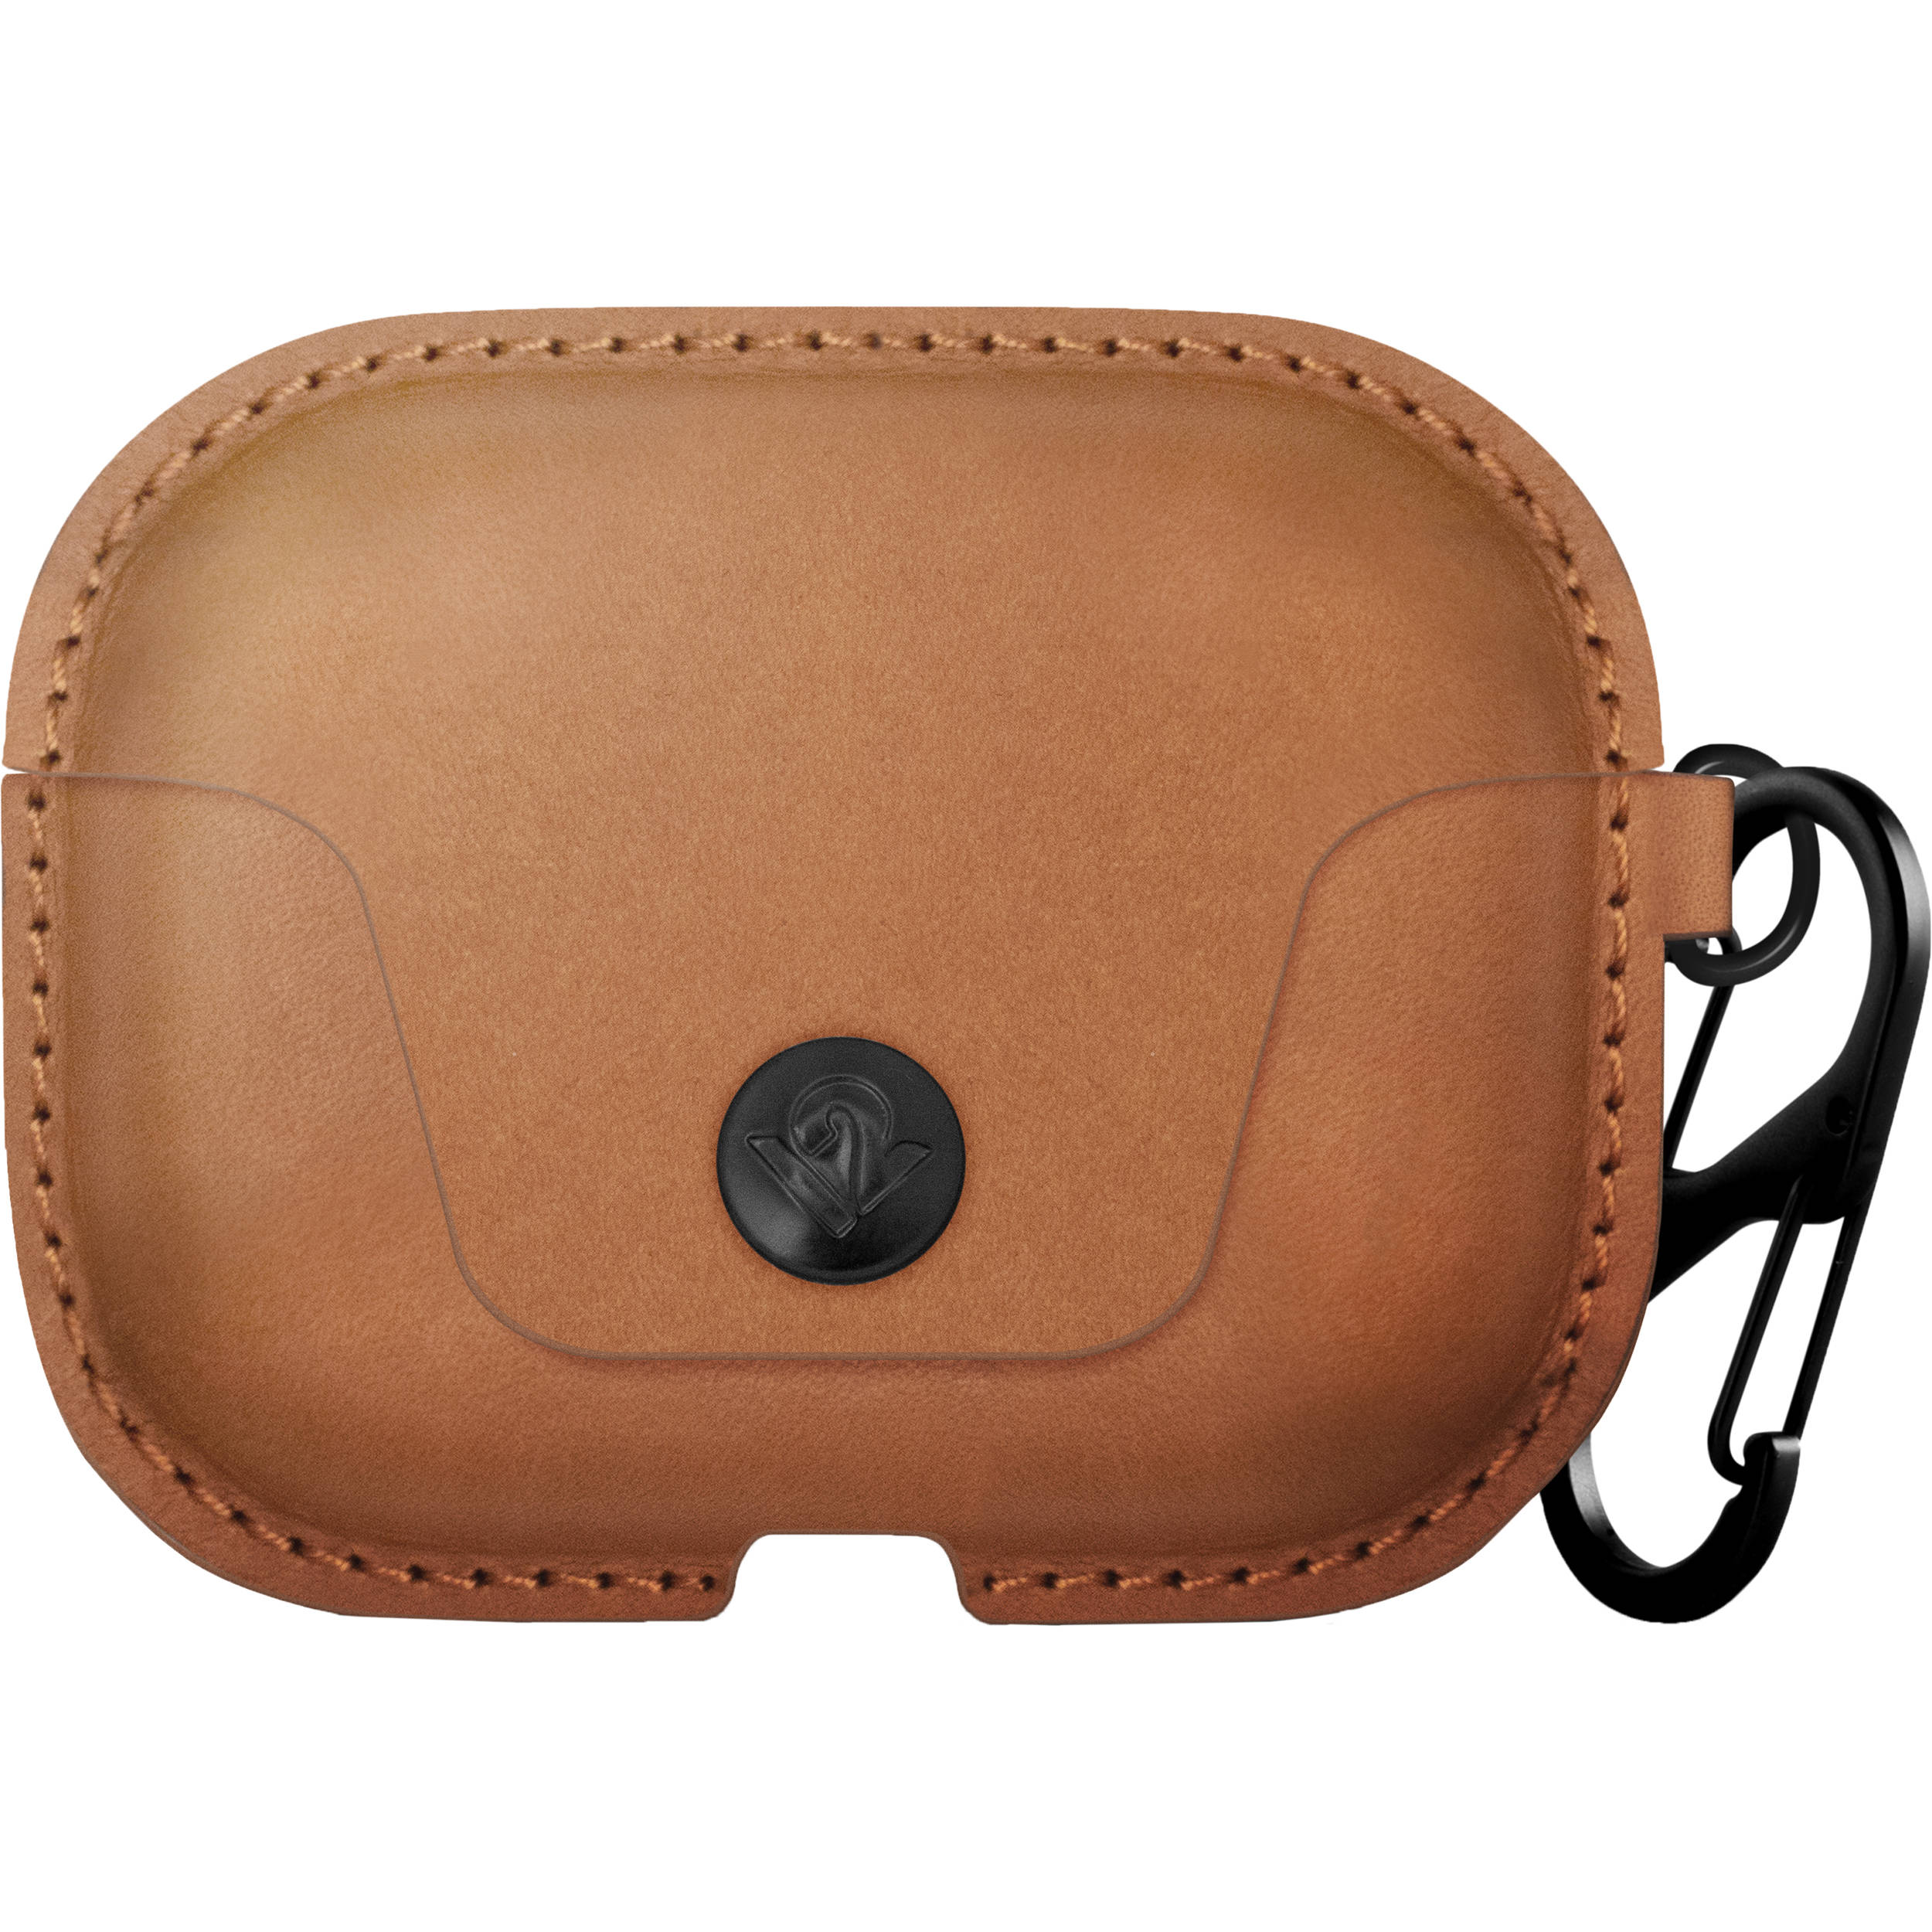 Twelve South Airsnap Pro Leather Road Case For Airpods 12 1967